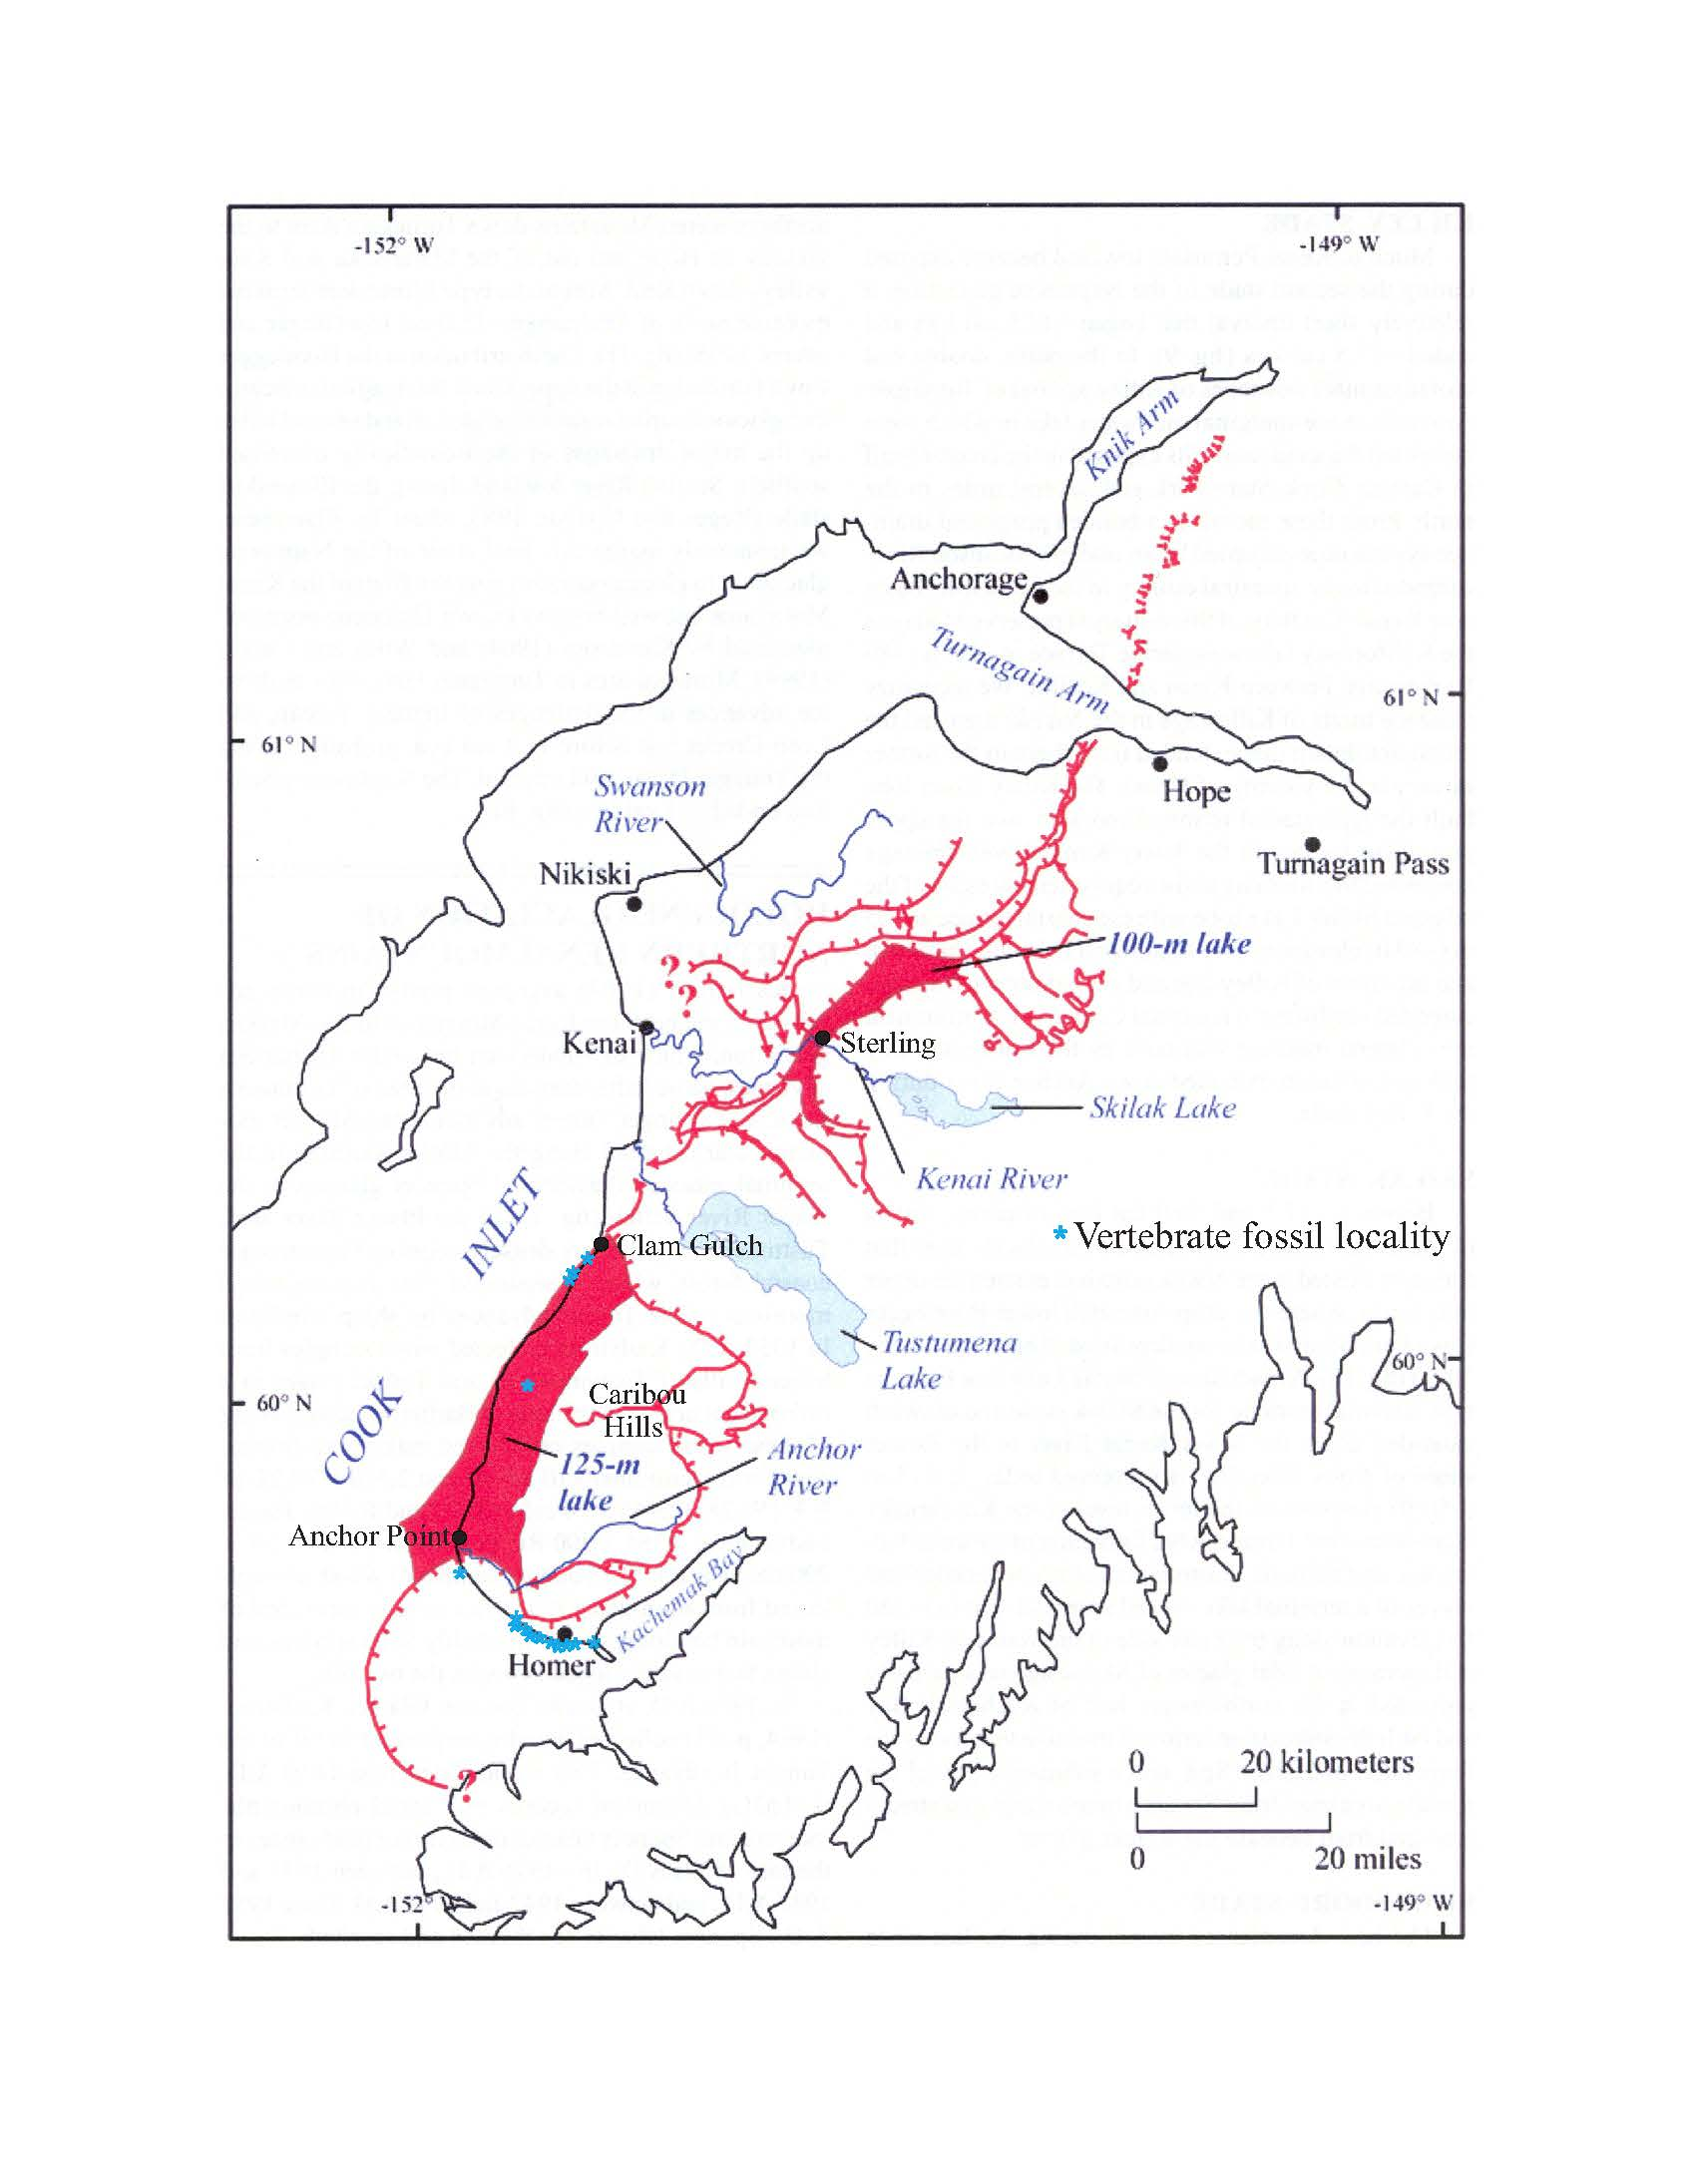 In this map, areas where fossils have been found are shown in blue. The red lines indicate glaciation during the stage 3 interglacial period, with the area toward Cook Inlet ice free, including a large lake, shown in red.